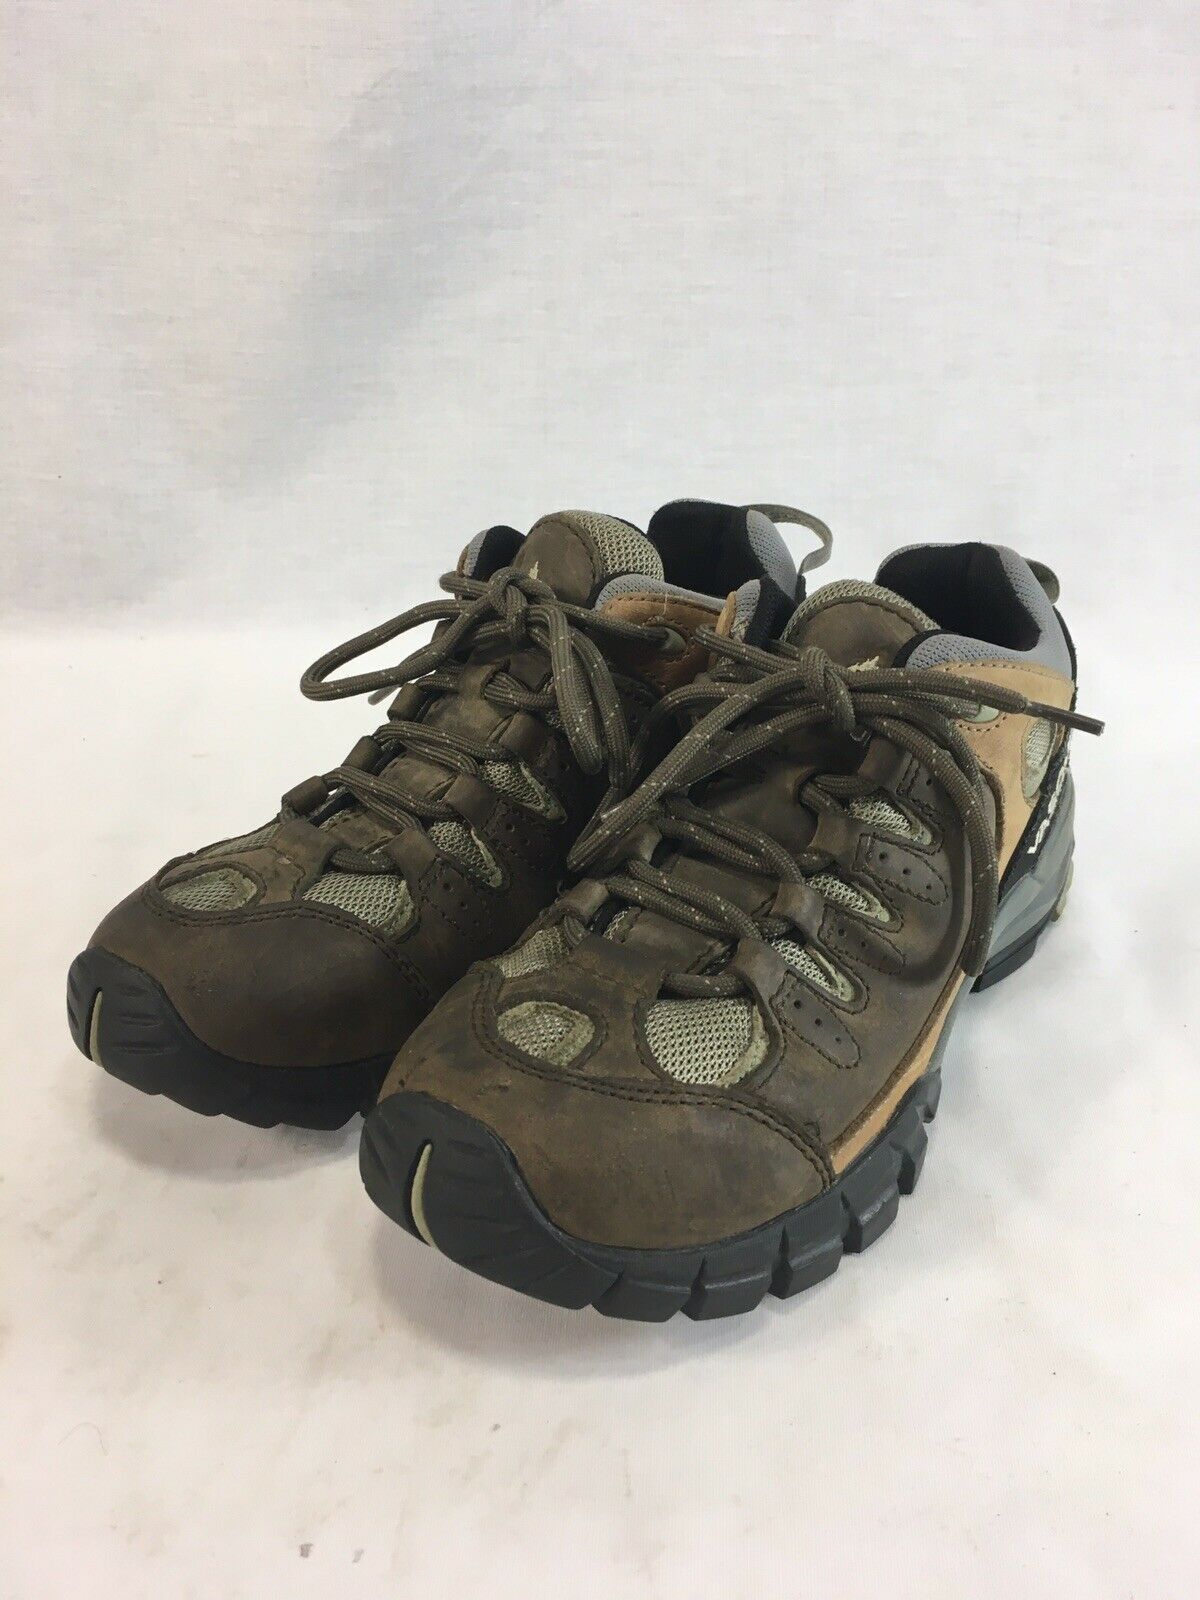 Vasque Hiking Boots Sneakers shoes  Womens 7.5 M Brown Leather Low Top Lace Up  online store